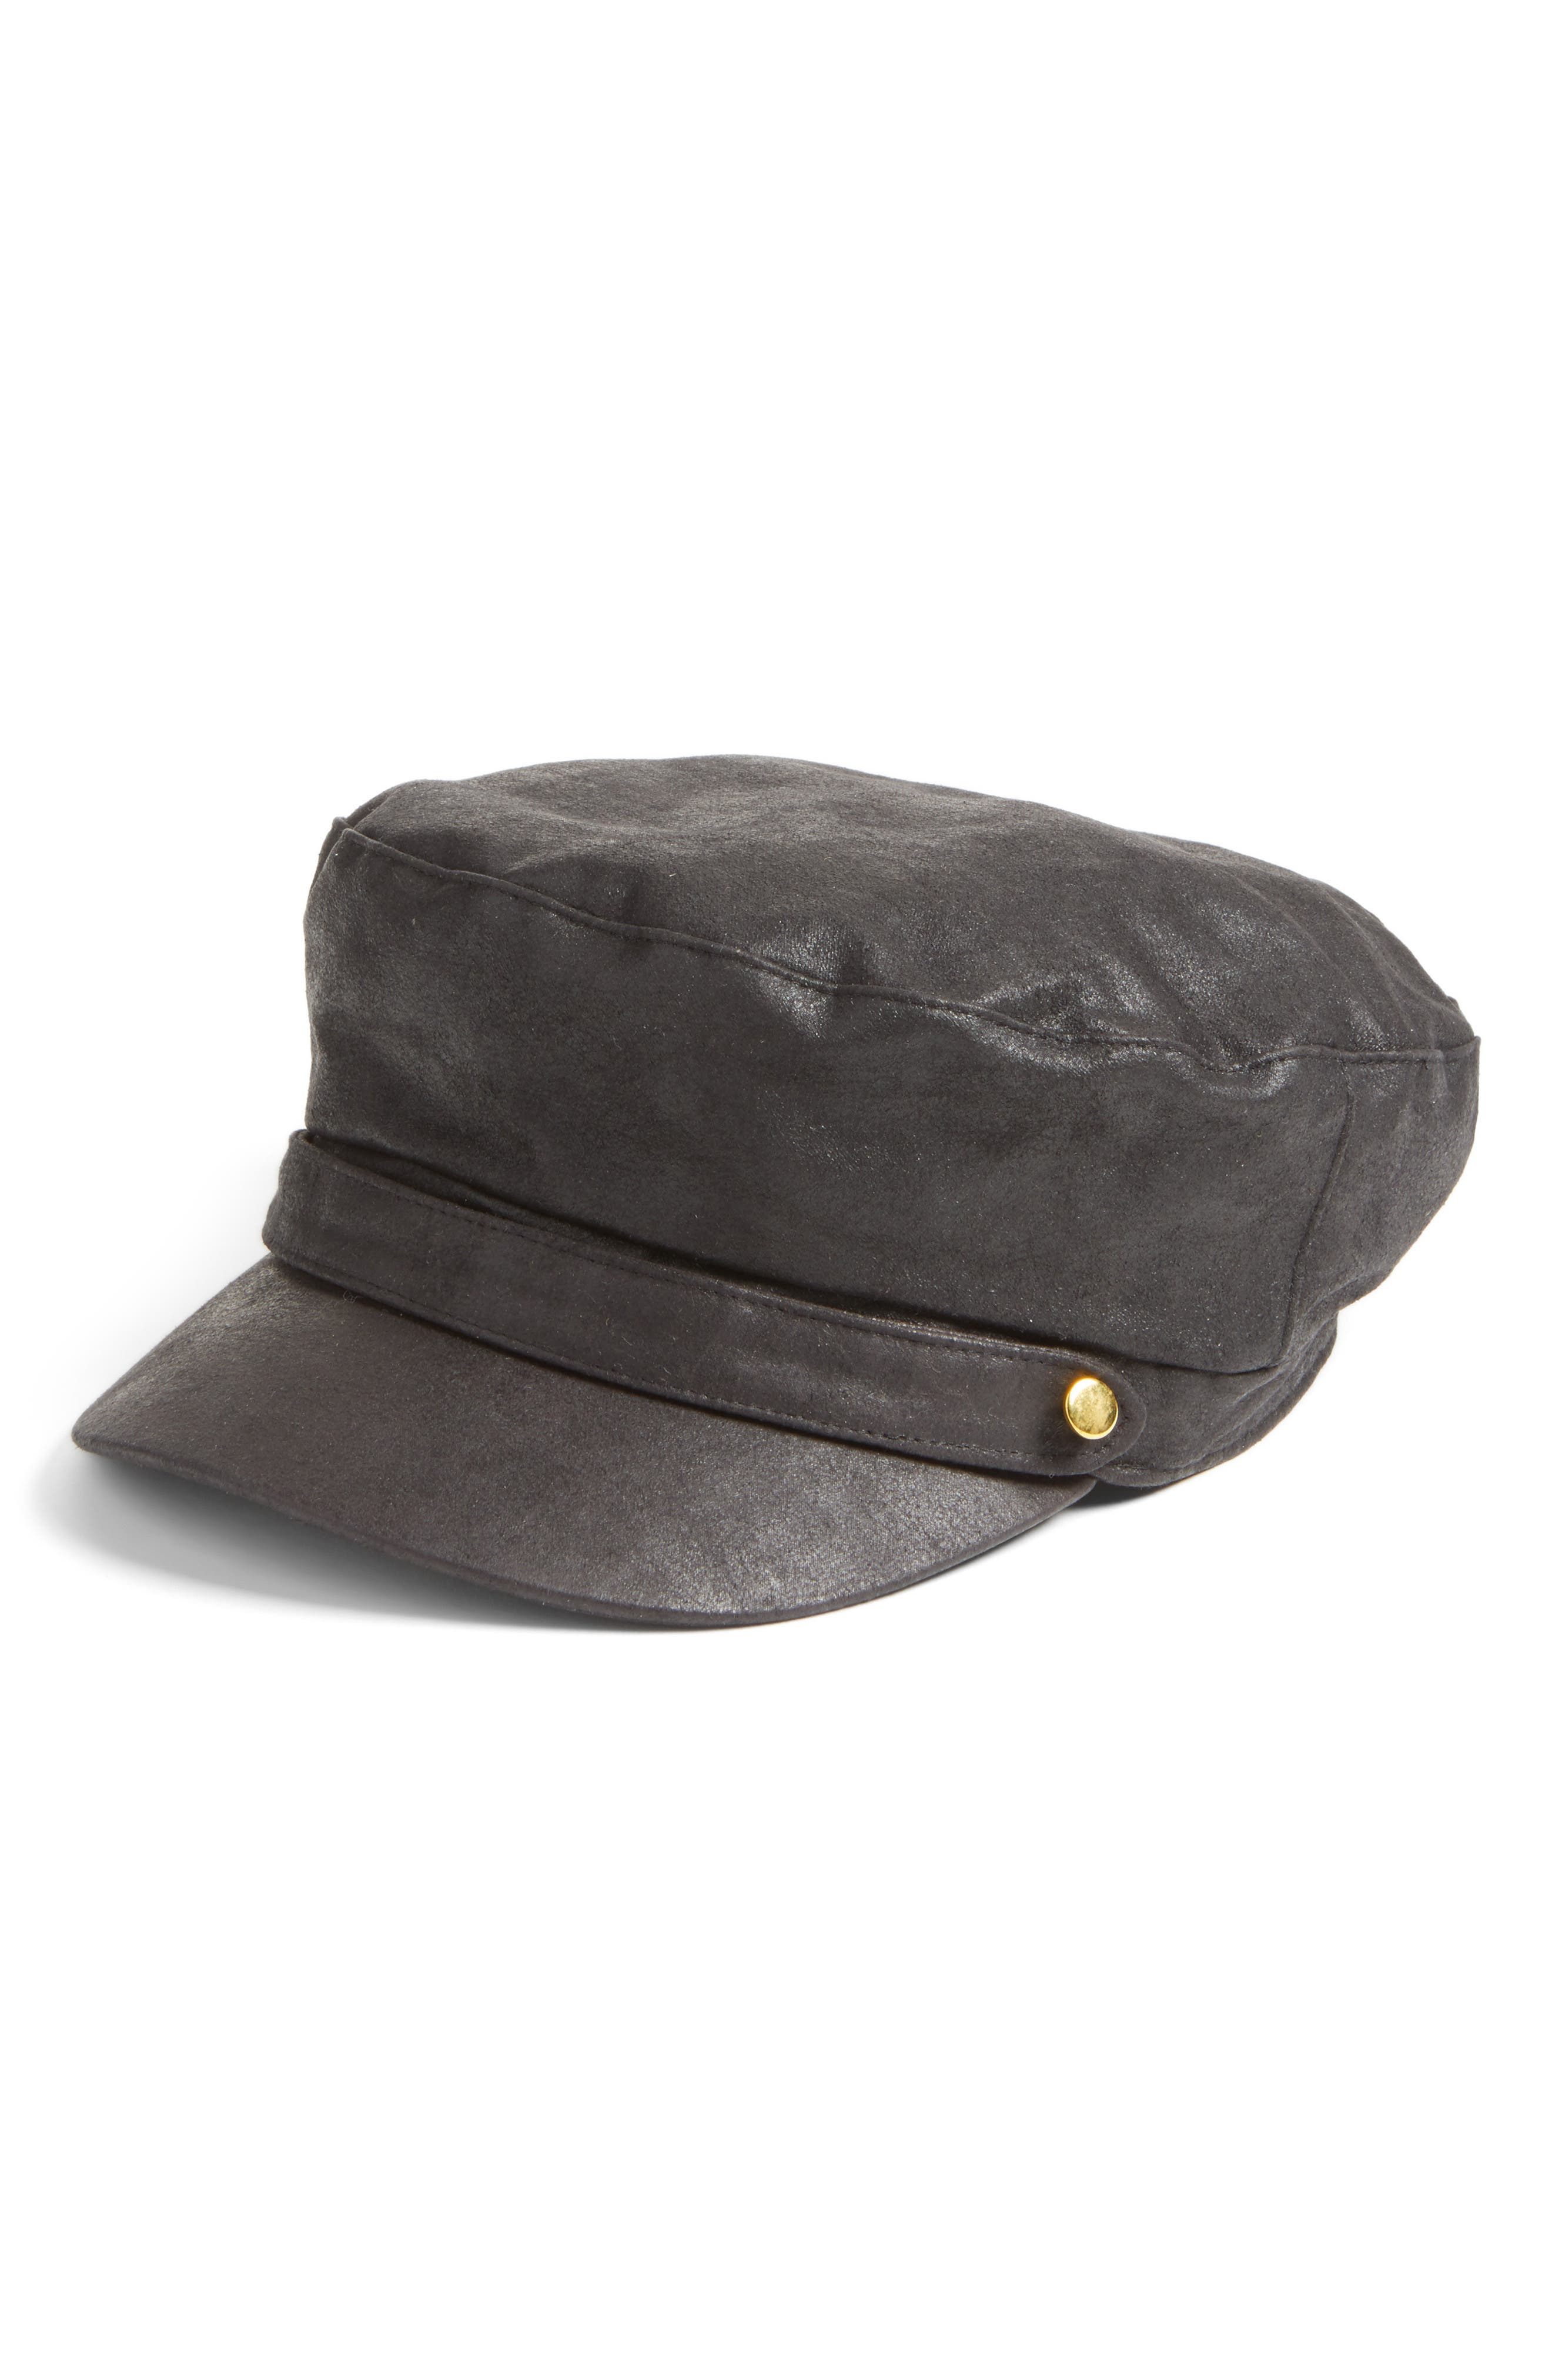 August Hat Lieutenant Cap